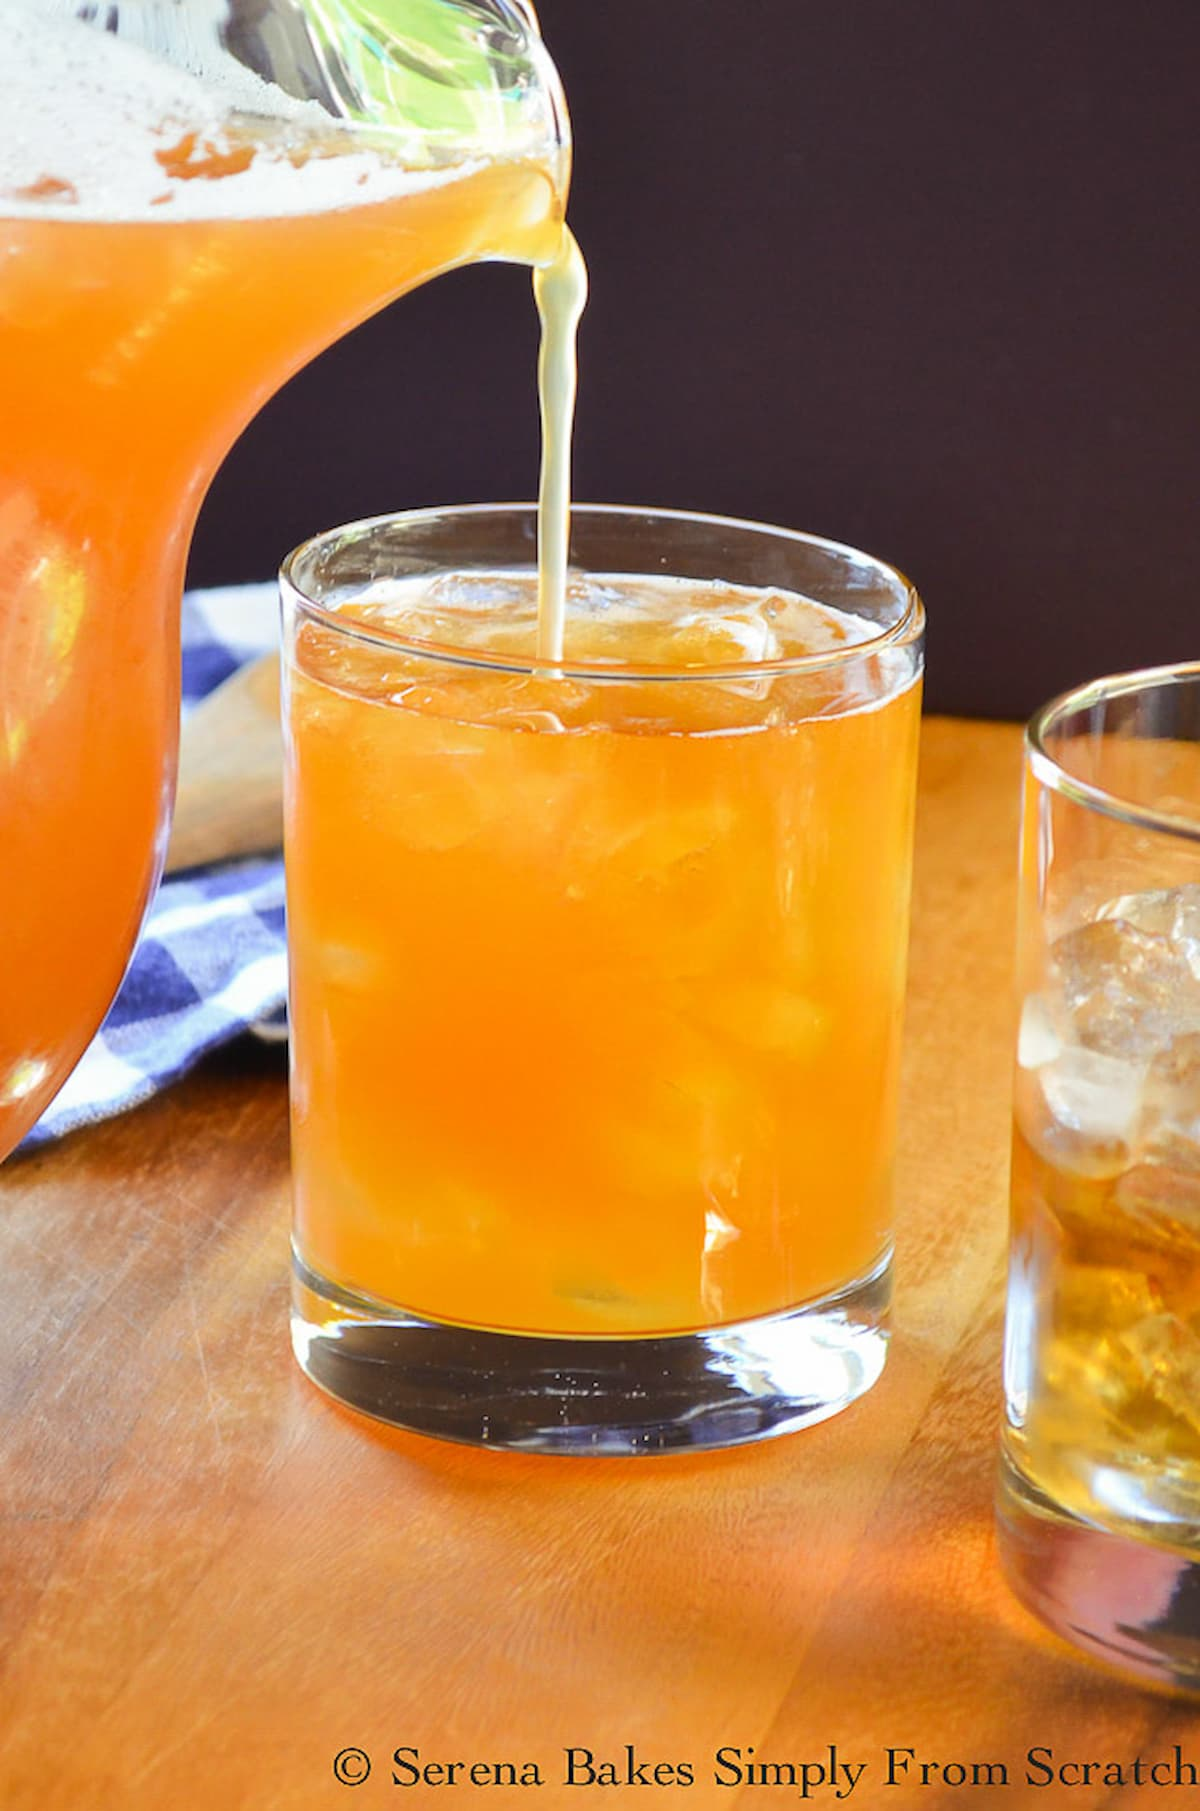 Peach Whiskey Iced Tea being poured from a pitcher into a glass filled with ice.